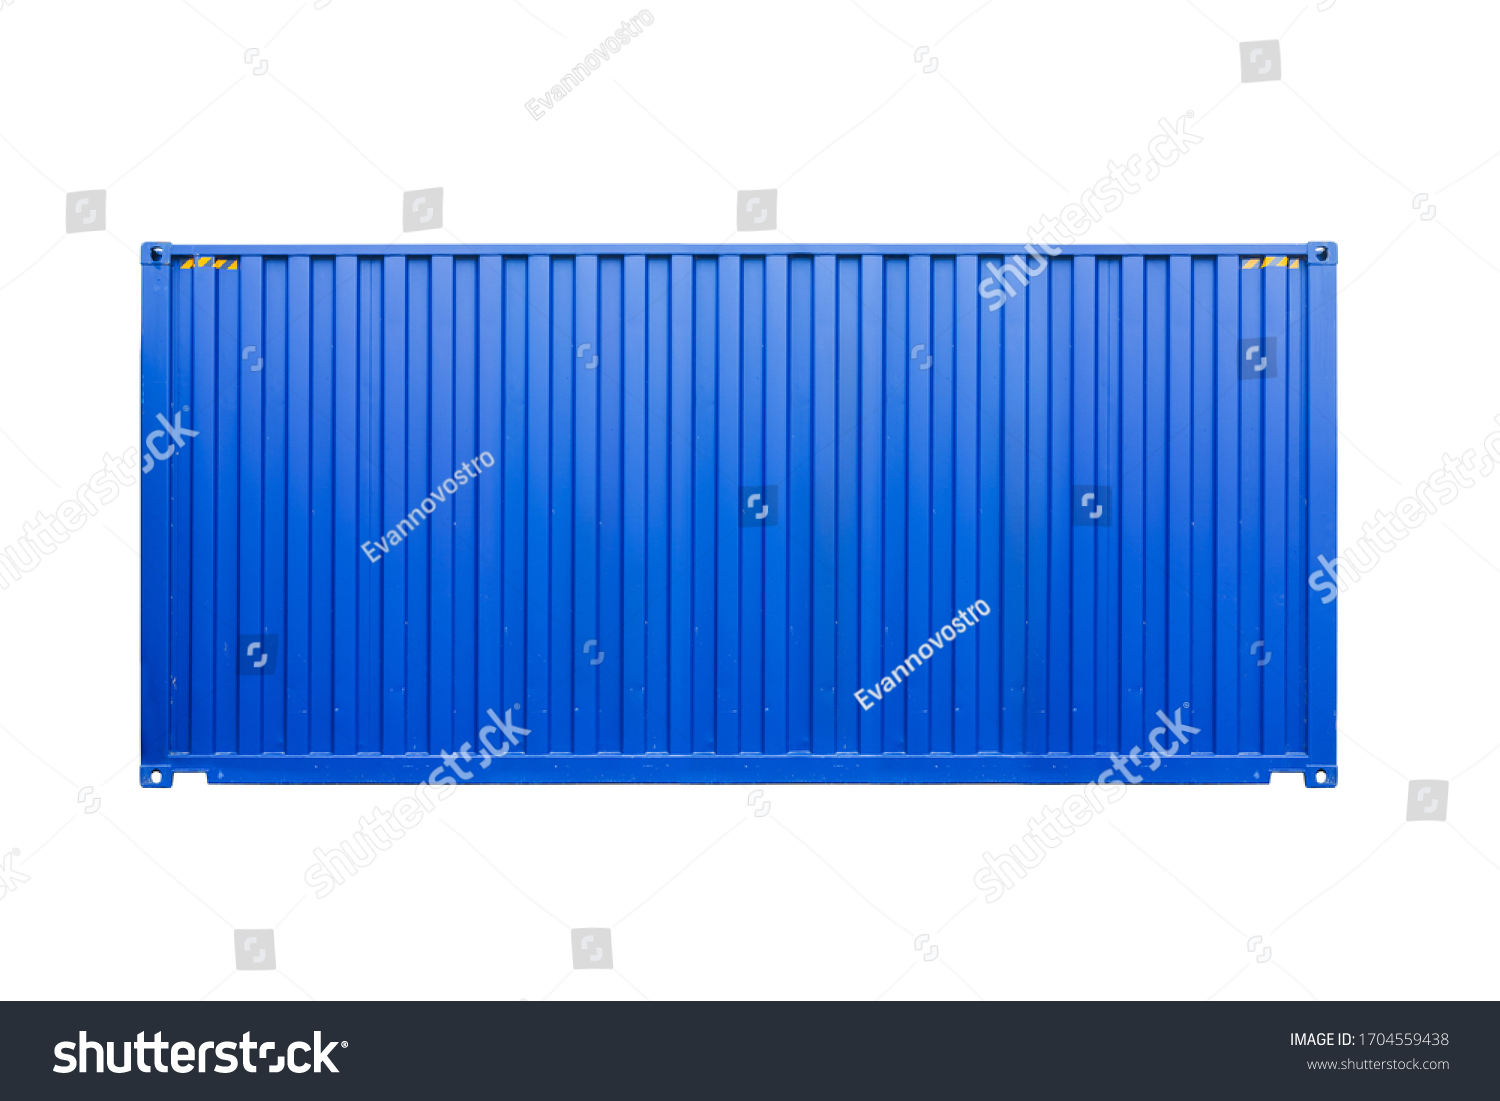 Standard blue cargo container isolated on white background, side view. Modern industrial shipping equipment #1704559438